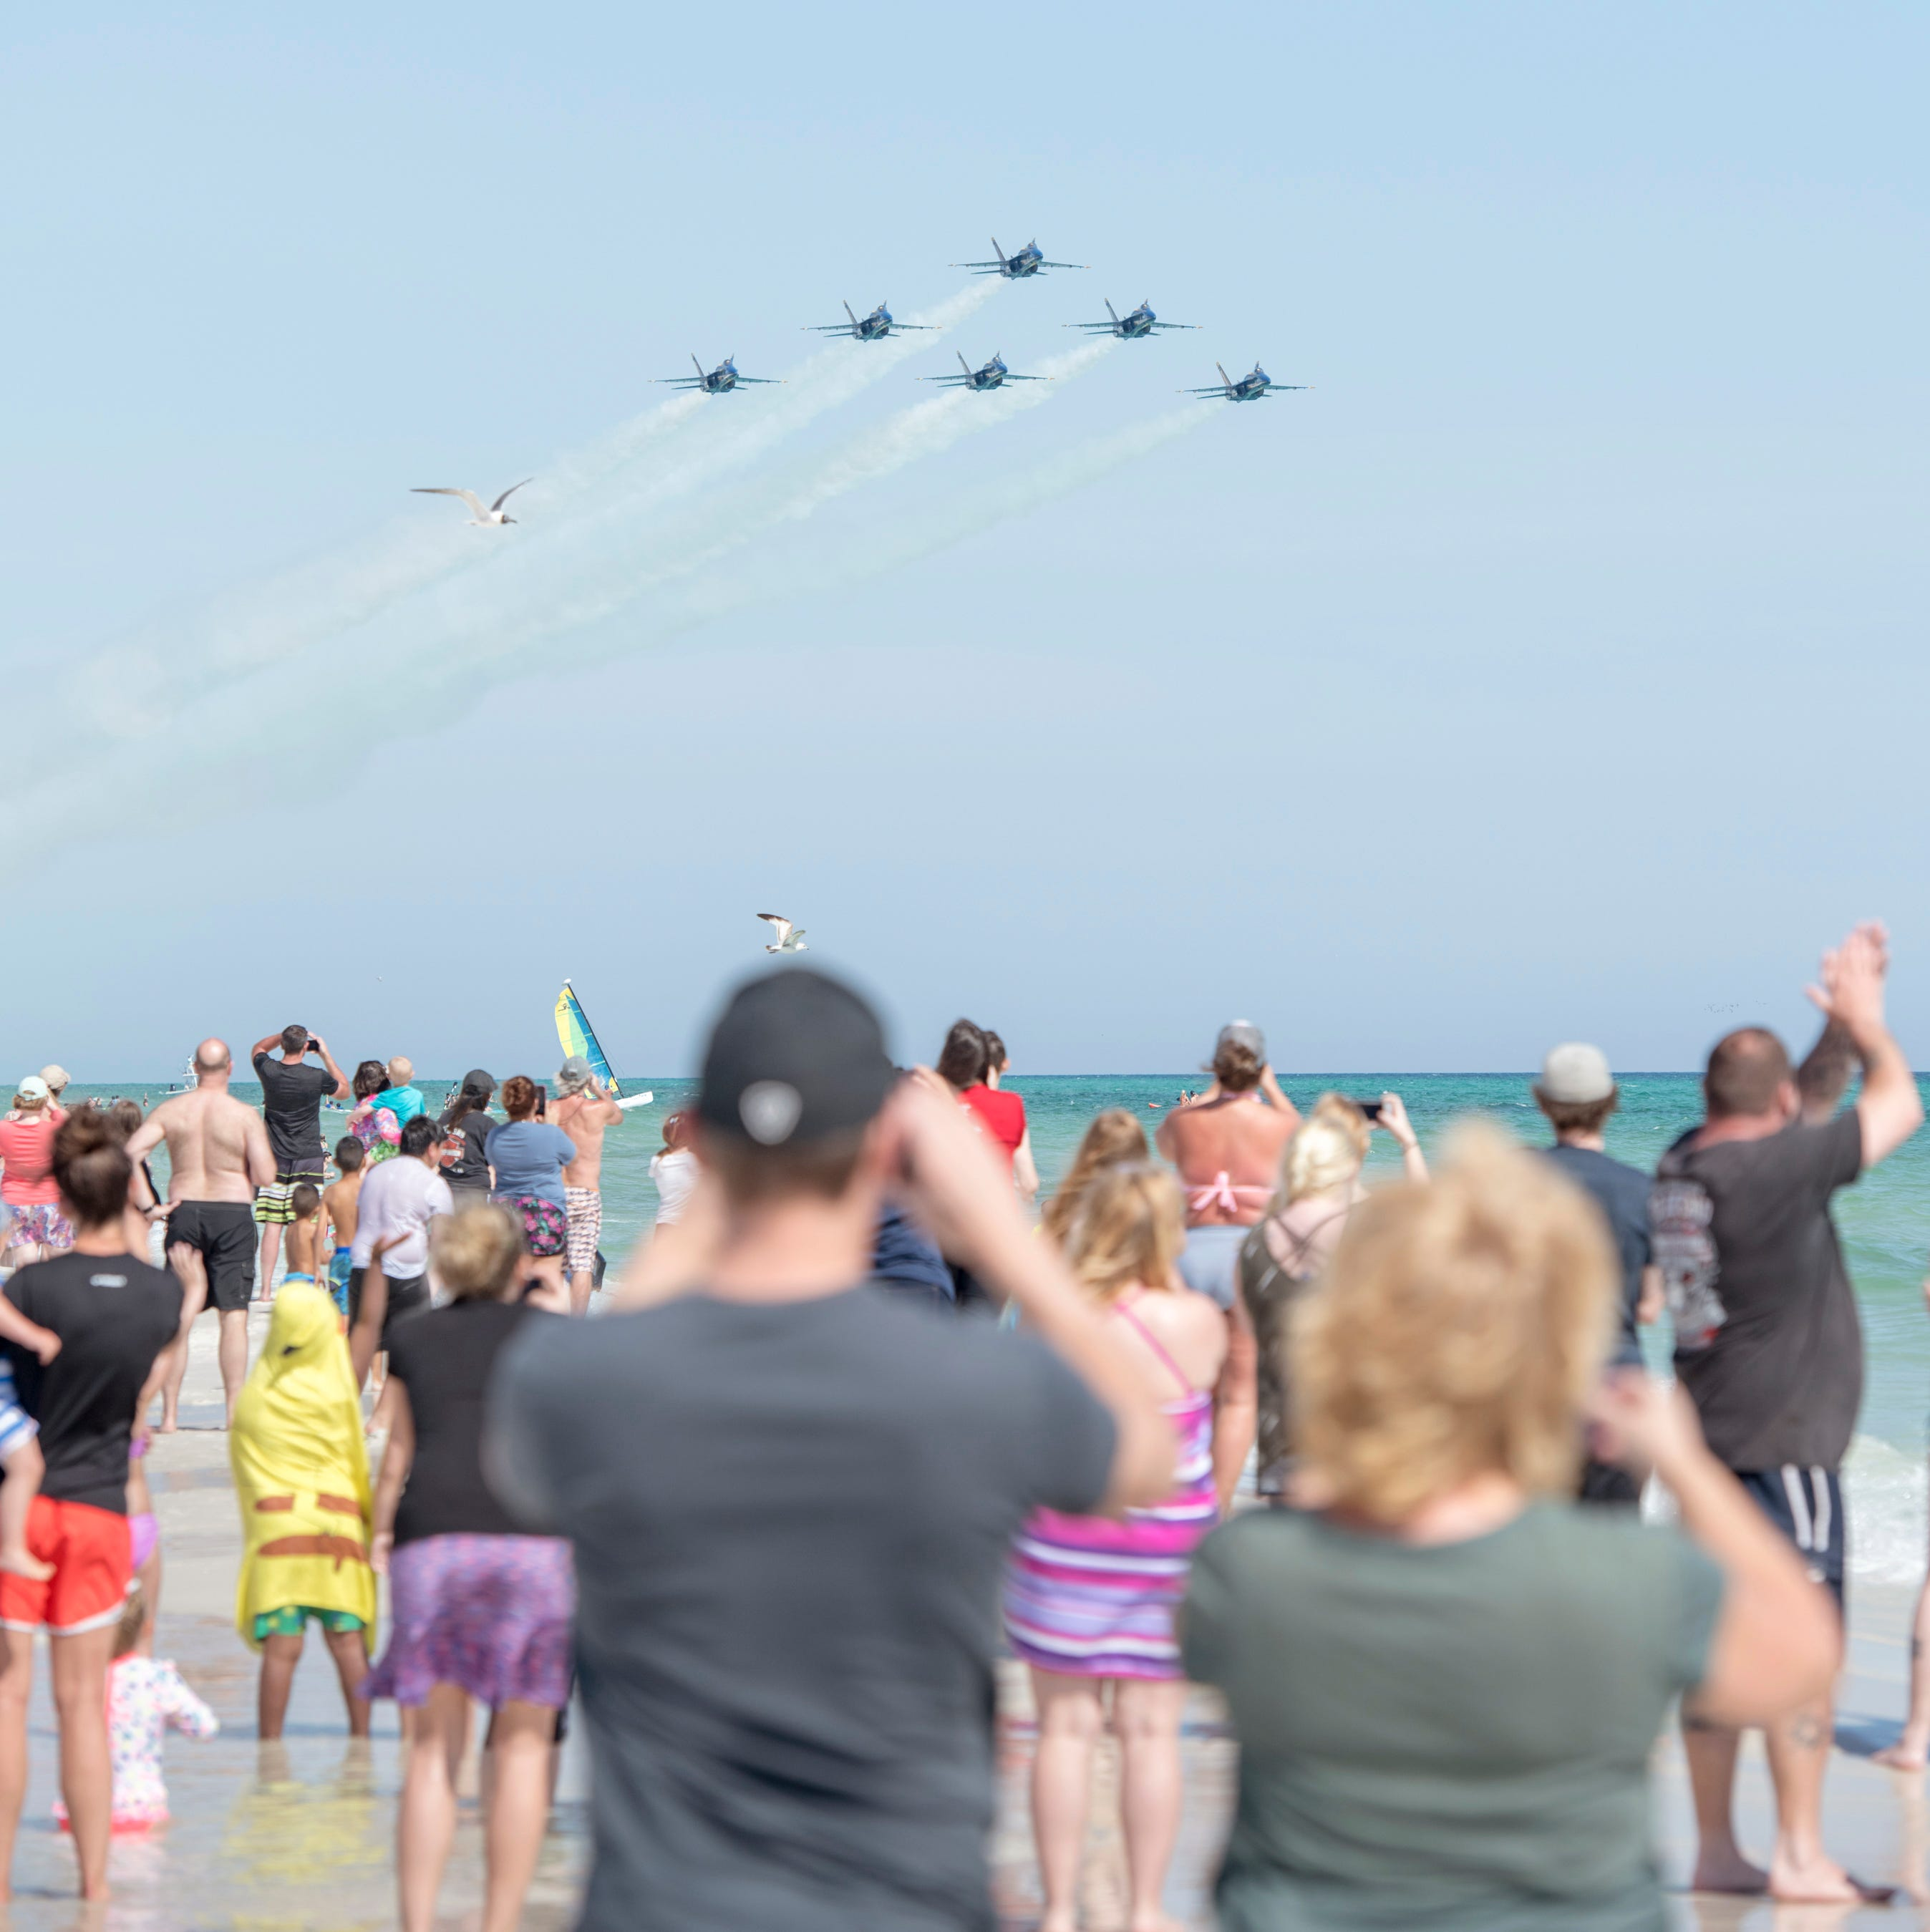 Blue Angels make their triumphant return to Pensacola. Did you catch them?